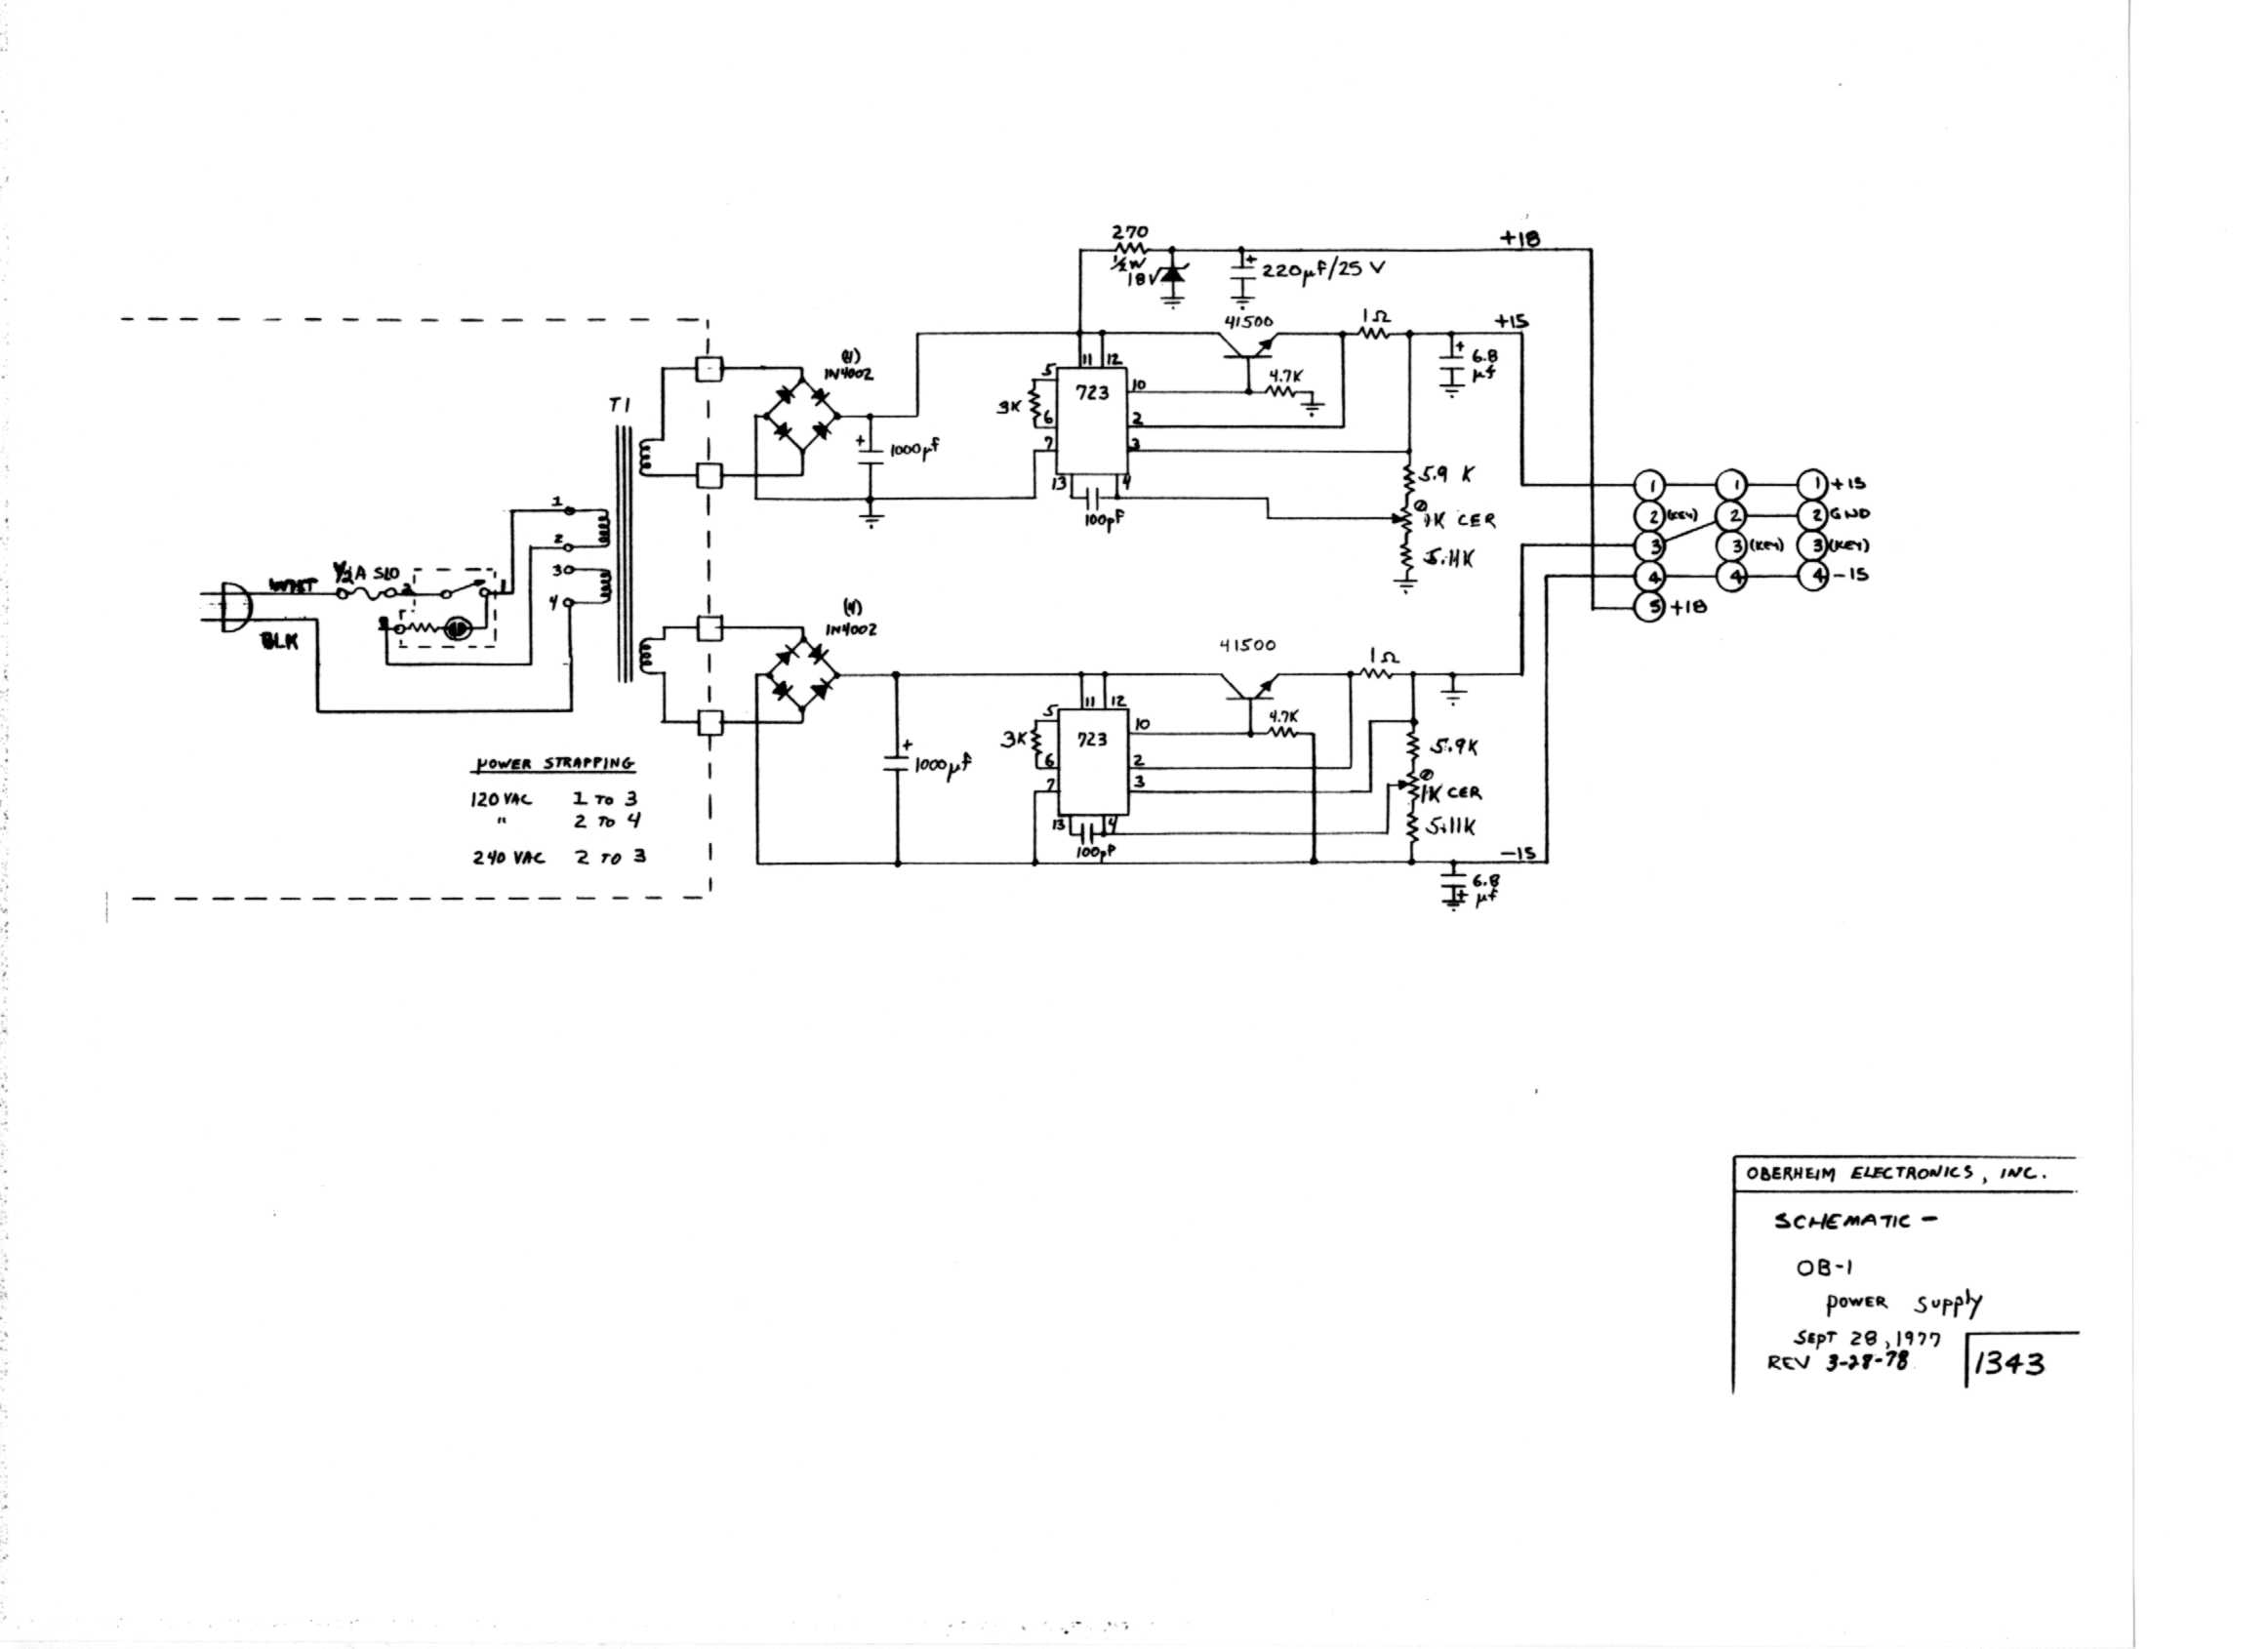 Miscellaneous Oberheim Files Envelope Schematic Ob 1 Generator Chip Board